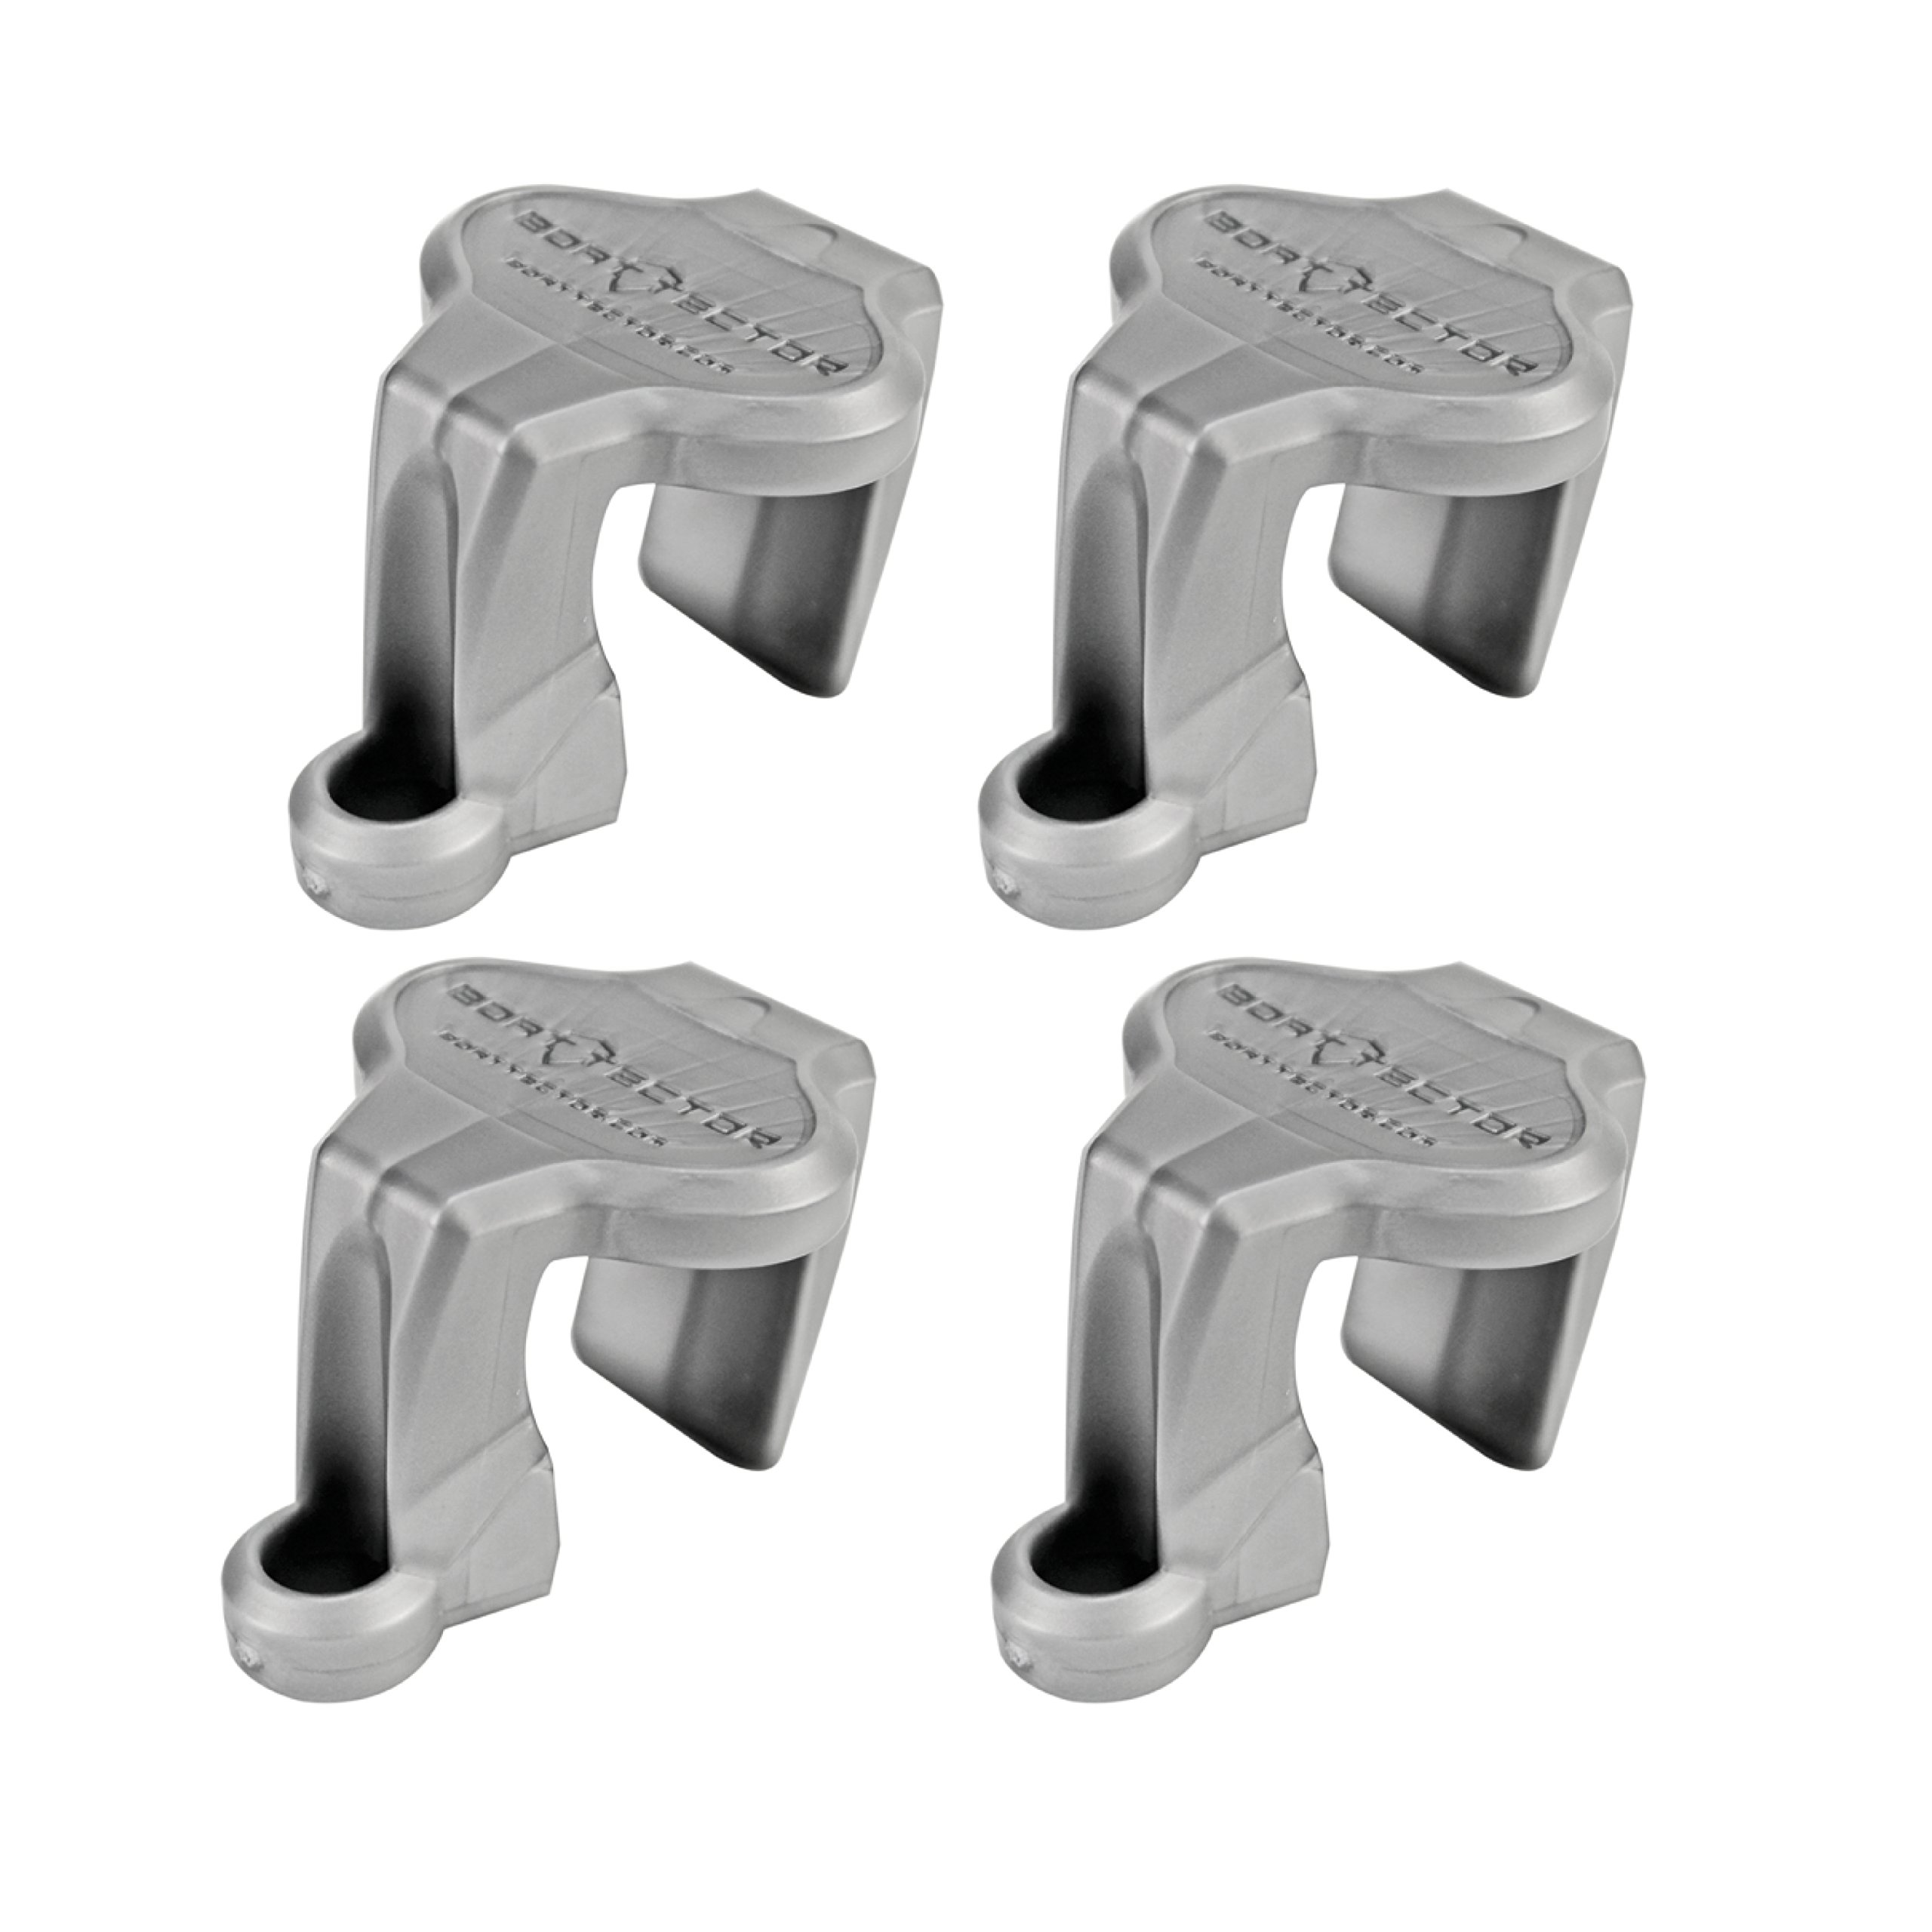 Extreme Max 3005.5002 BoatTector Pontoon Rail Fender Hanger/Adjuster – Pack of 4 by Extreme Max (Image #9)